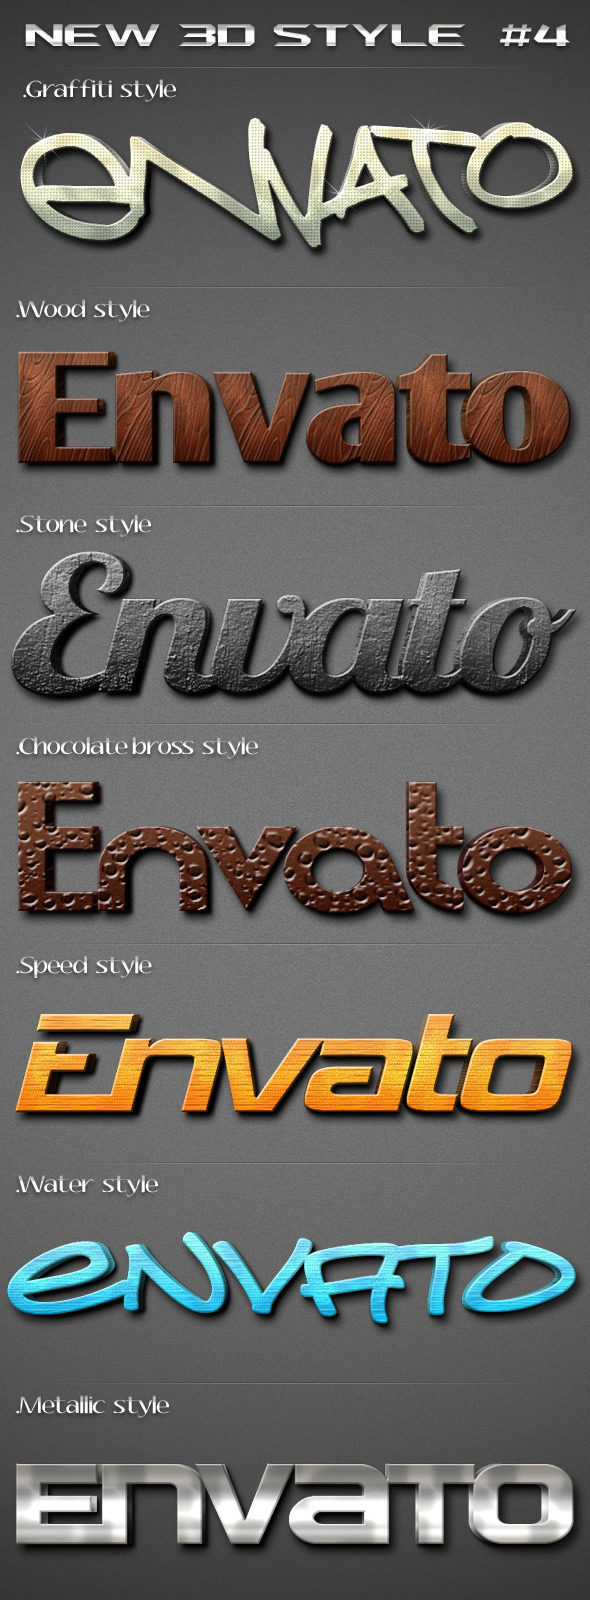 New 3D Text Style 4